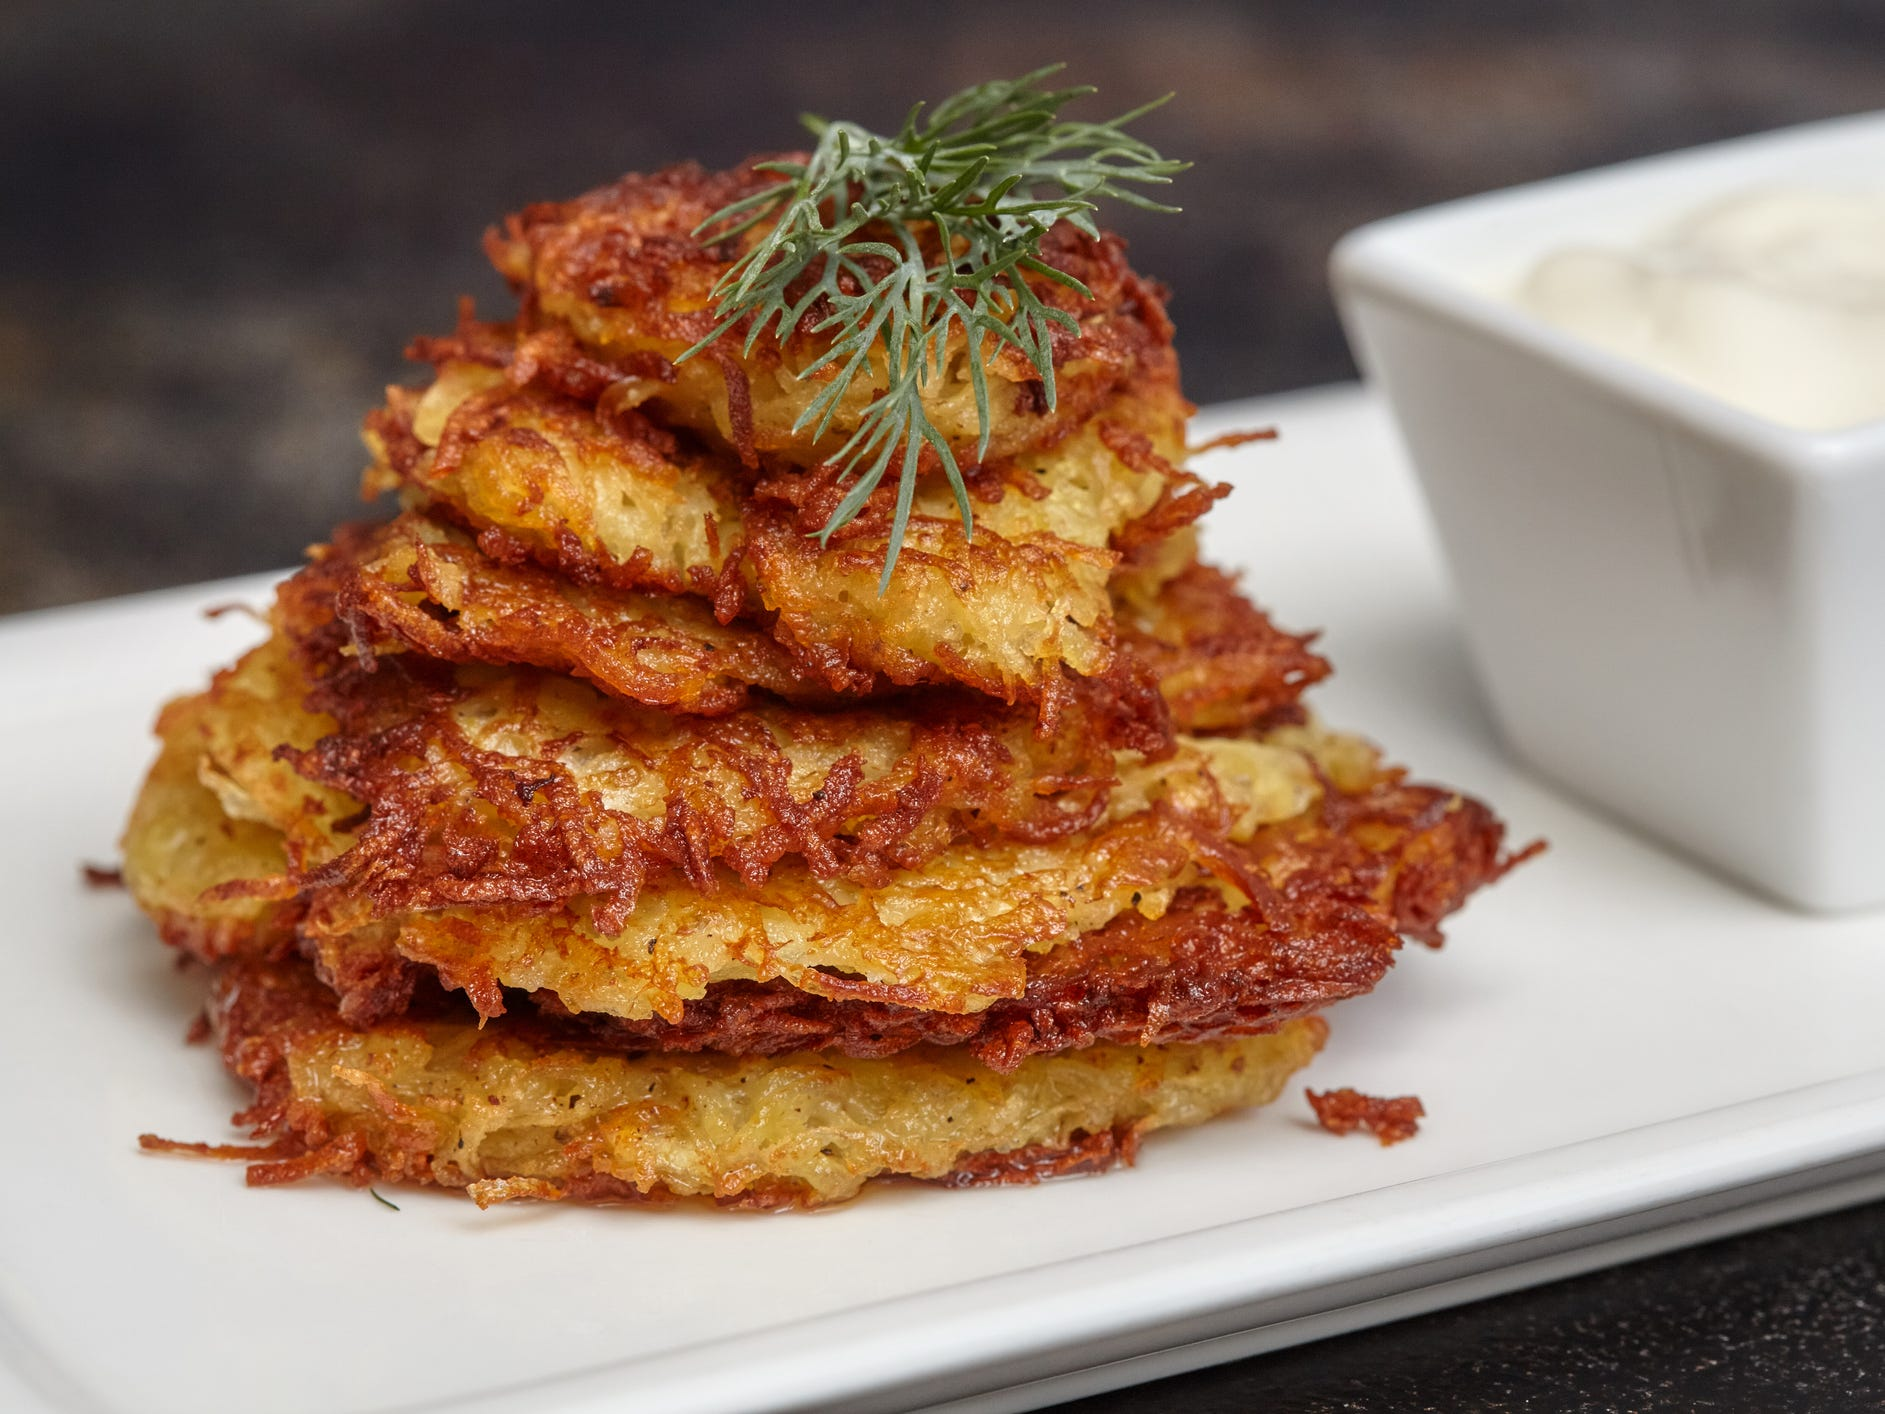 Latkes, Israel: Traditionally made for Hanukkah, latkes are potato pancakes that are fried in plenty of oil, then served with toppings such as sour cream or apple sauce. Much like potato chips, it's pretty much impossible to eat just one latke, which is unfortunate since each tiny treat has about 5 grams of fat.